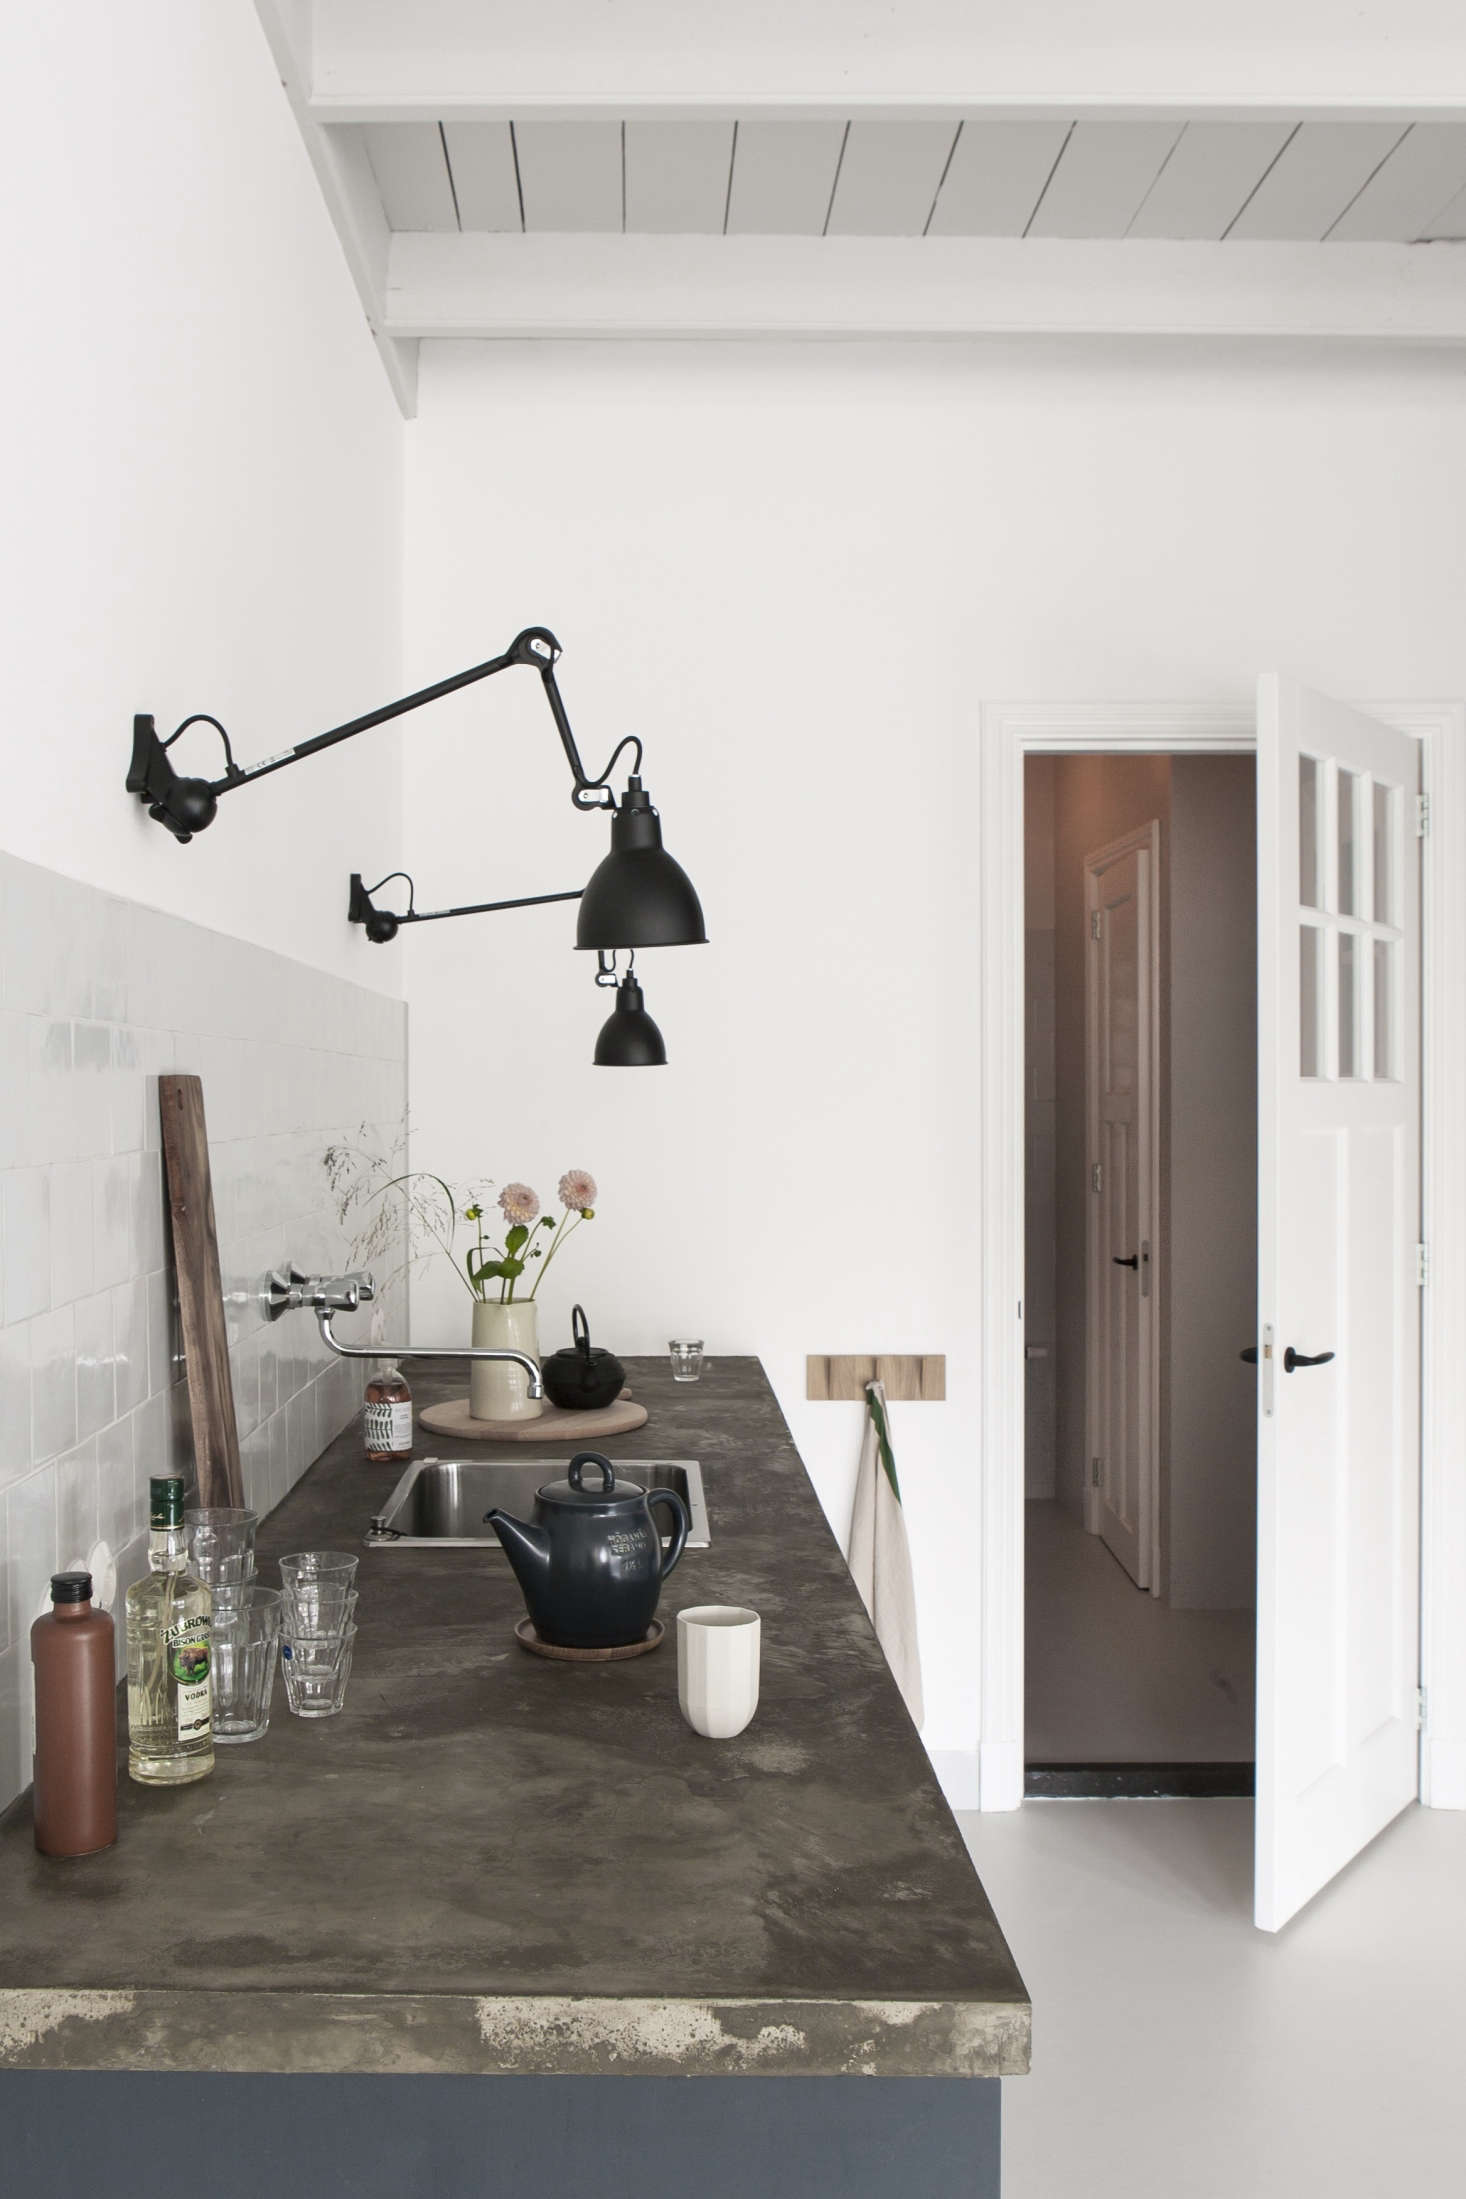 The adjustable sconcesareFrench classics byLampe Gras.